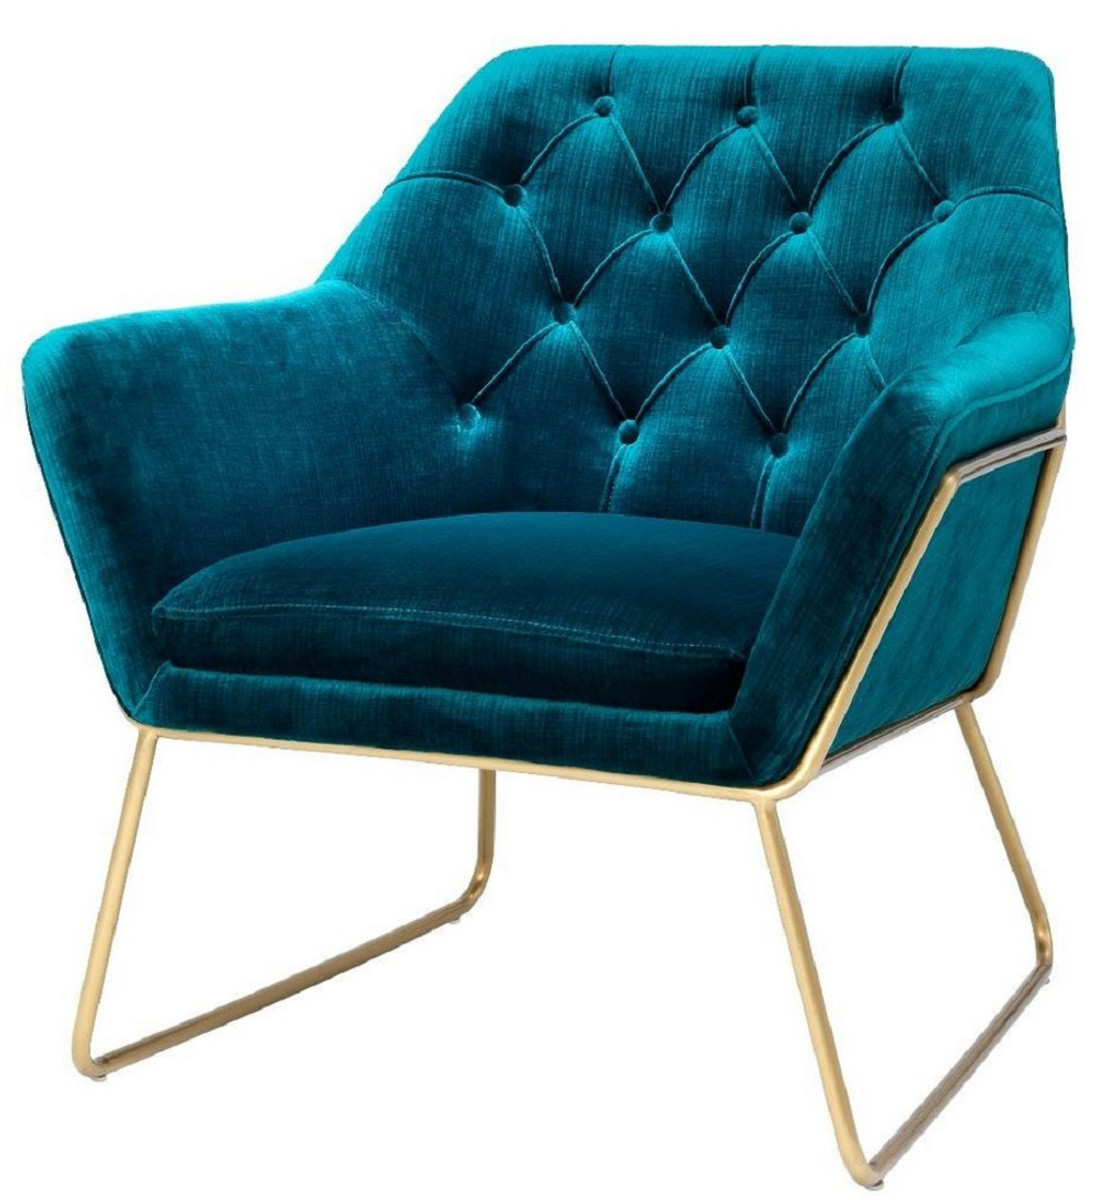 Sessel Blau Casa Padrino Luxus Lounge Samt Sessel Blau / Messing 75 X 78 X H. 82 Cm - Retro Wohnzimmer Sessel - Luxus Möbel |